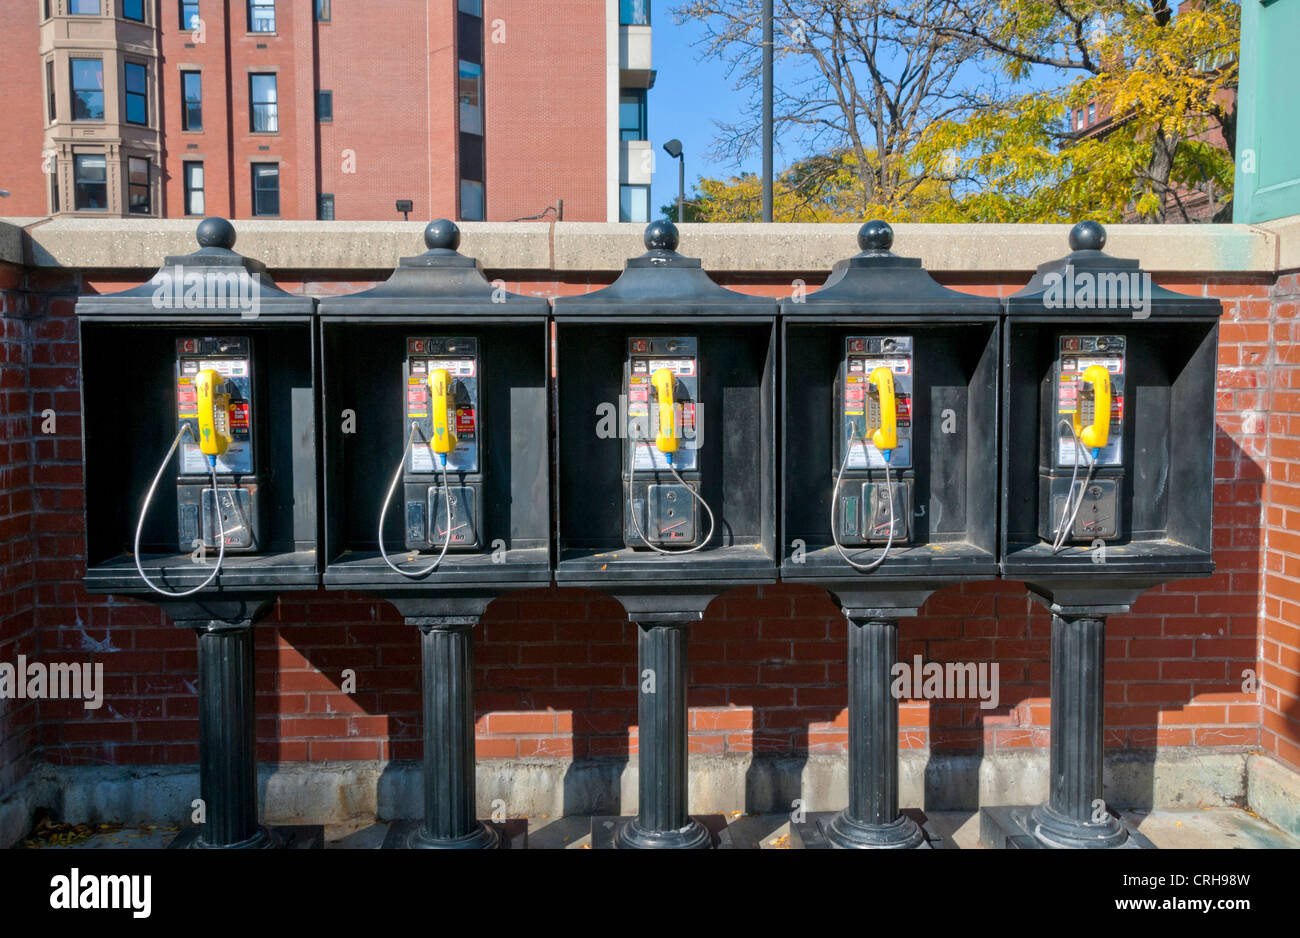 Old fashioned payphones in Boston, Massachusetts, USA - Stock Image